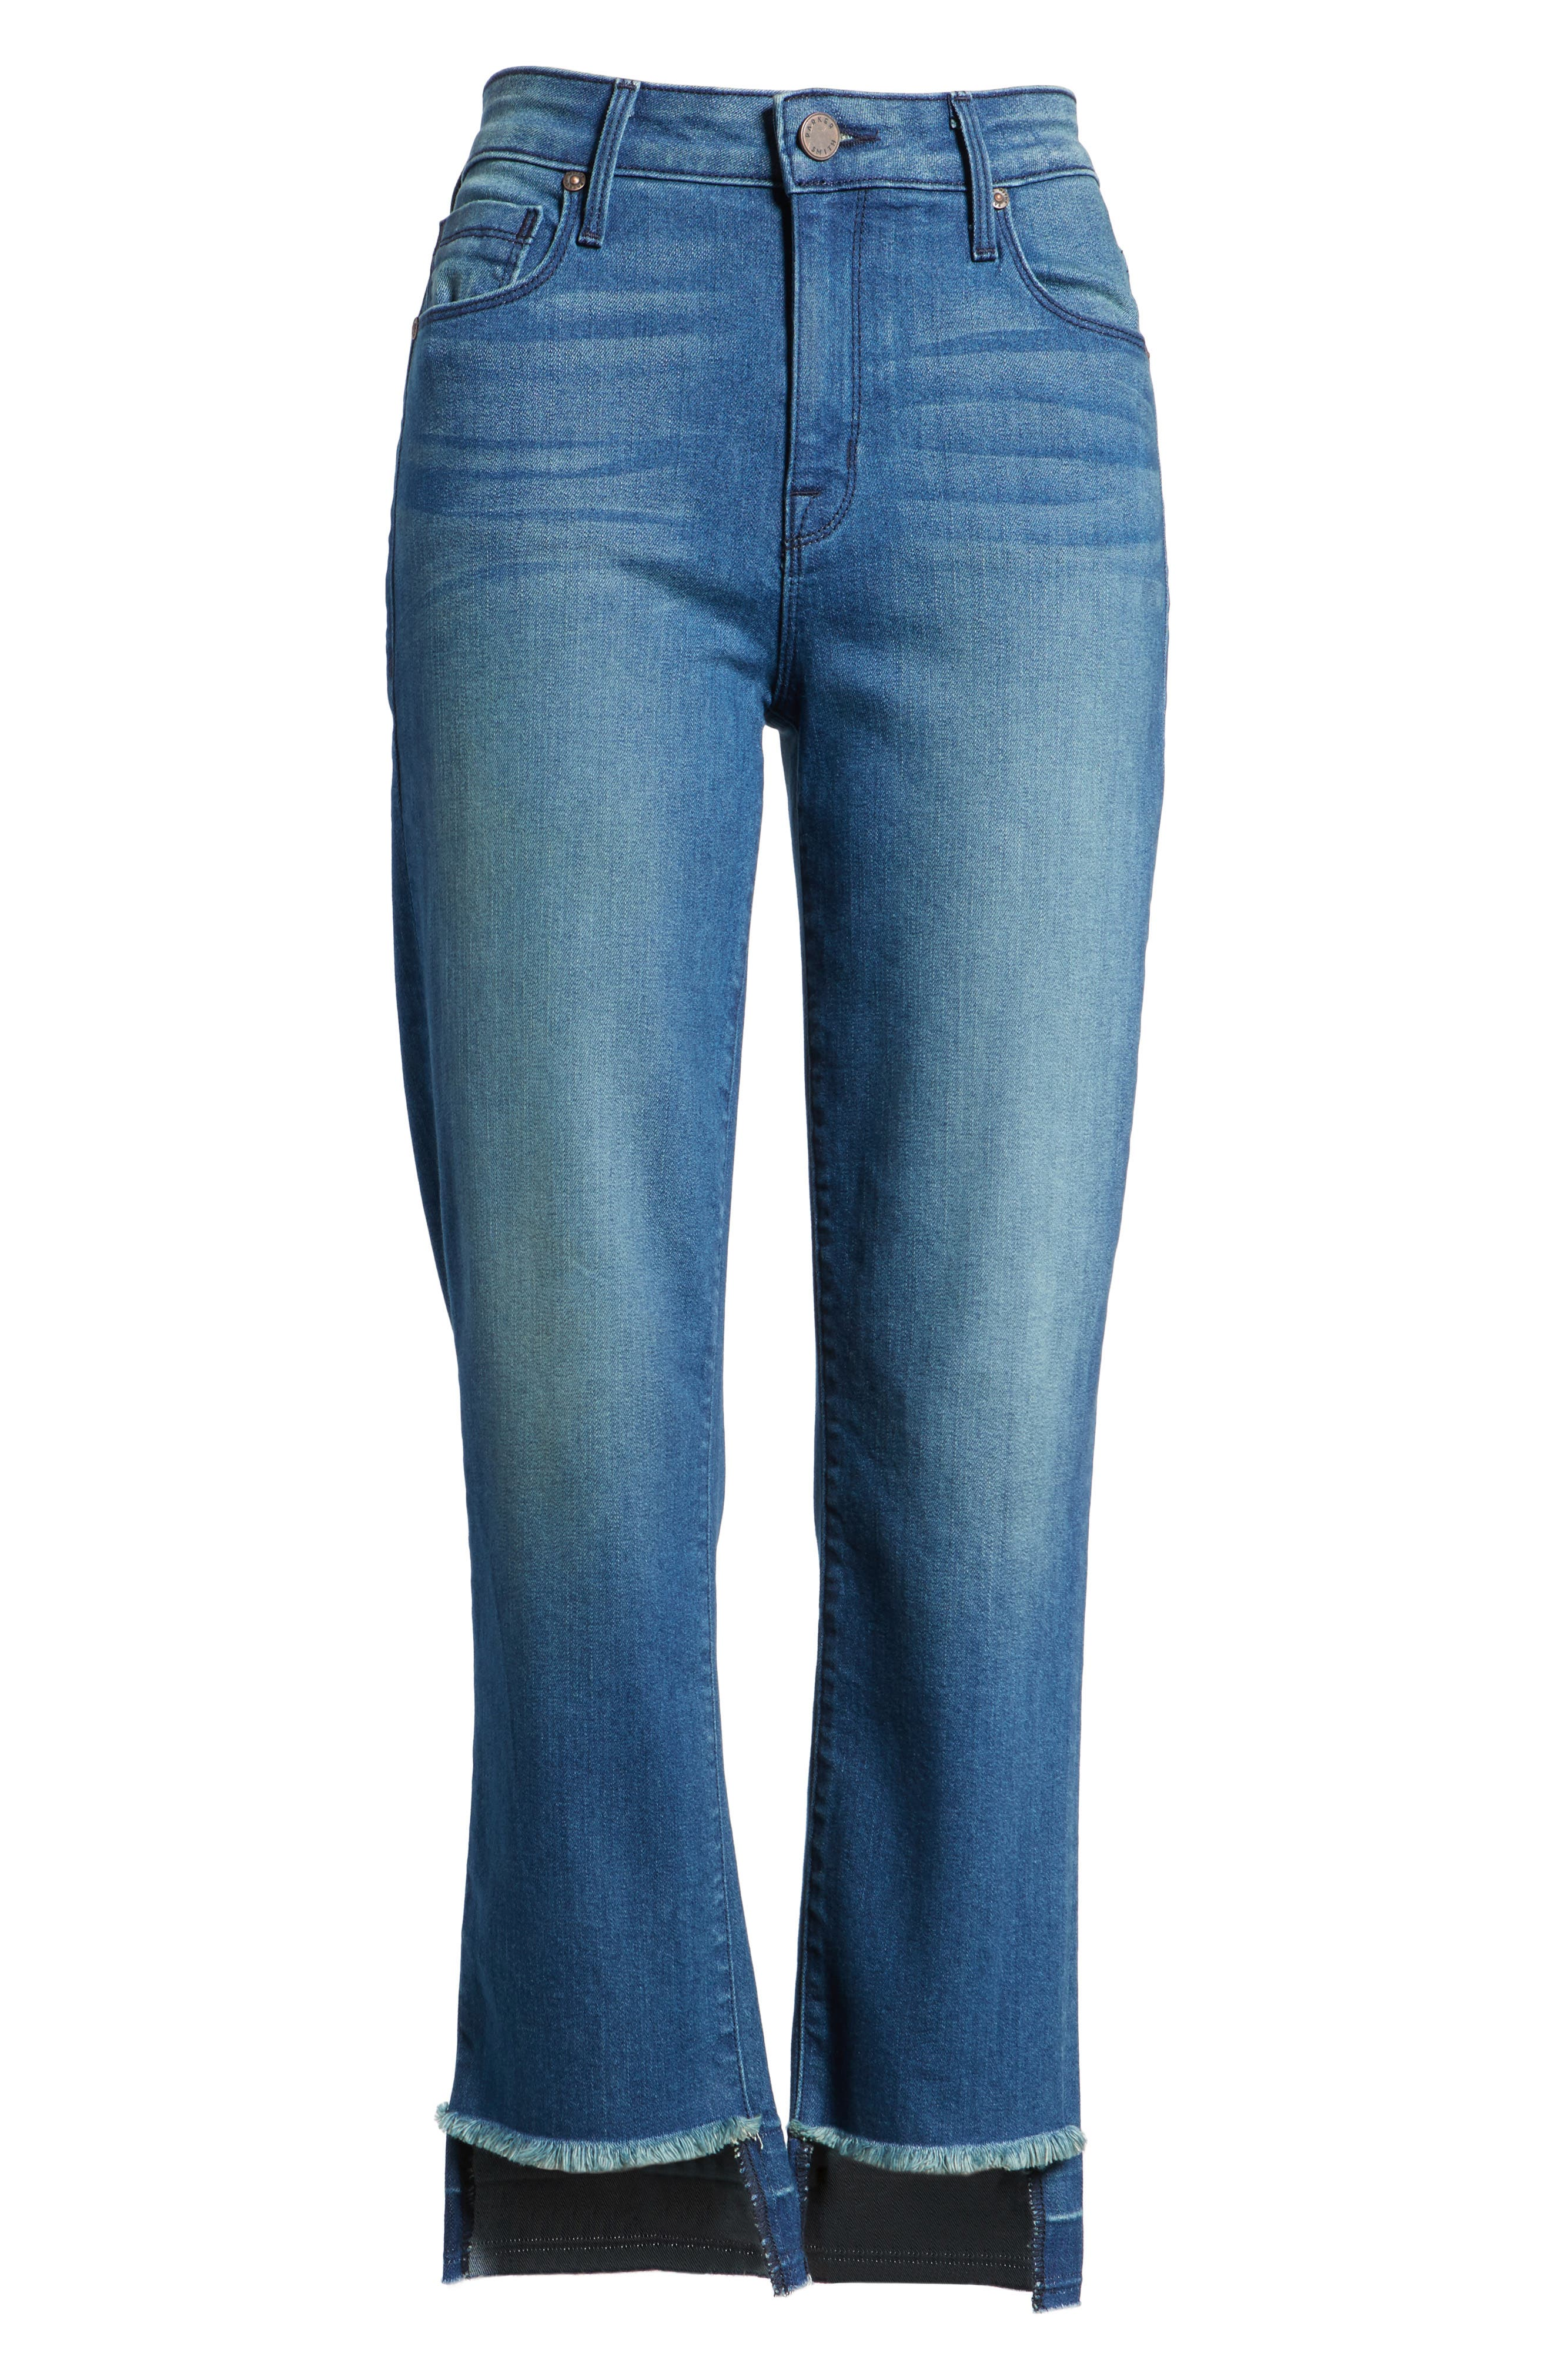 Pin-Up Straight Leg Crop Jeans,                             Alternate thumbnail 7, color,                             424